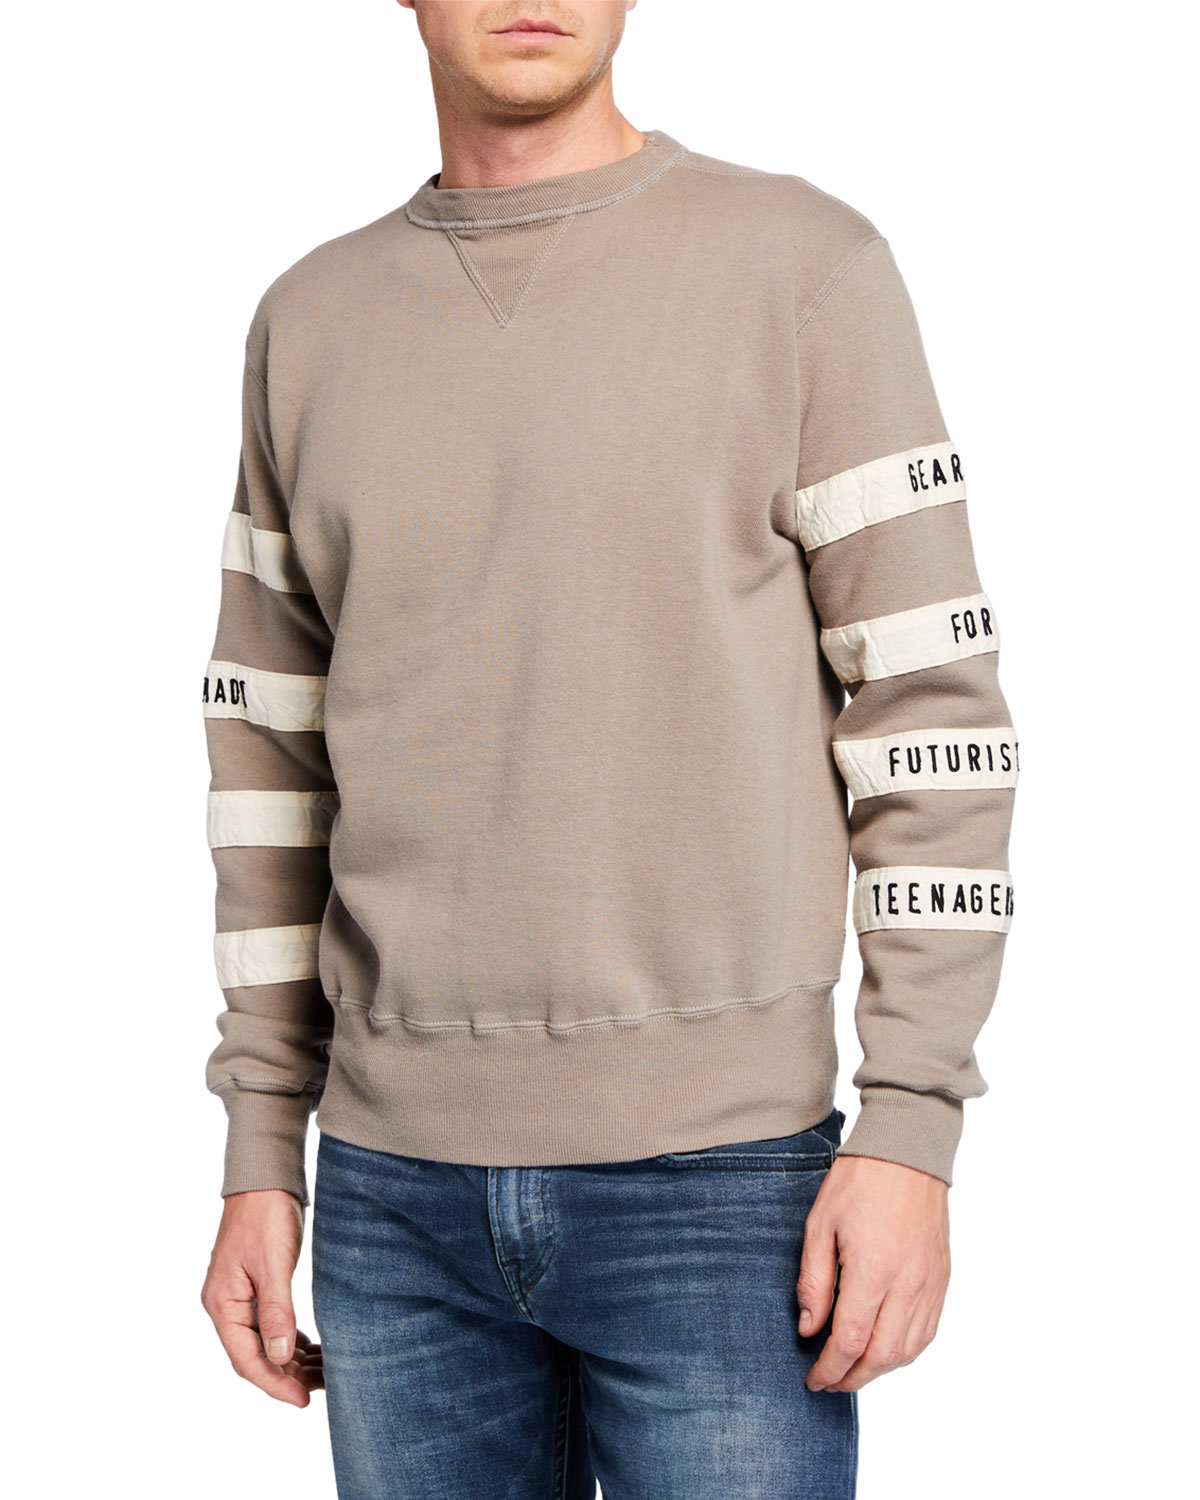 HUMAN MADE Men'S Football Sweater in Gray